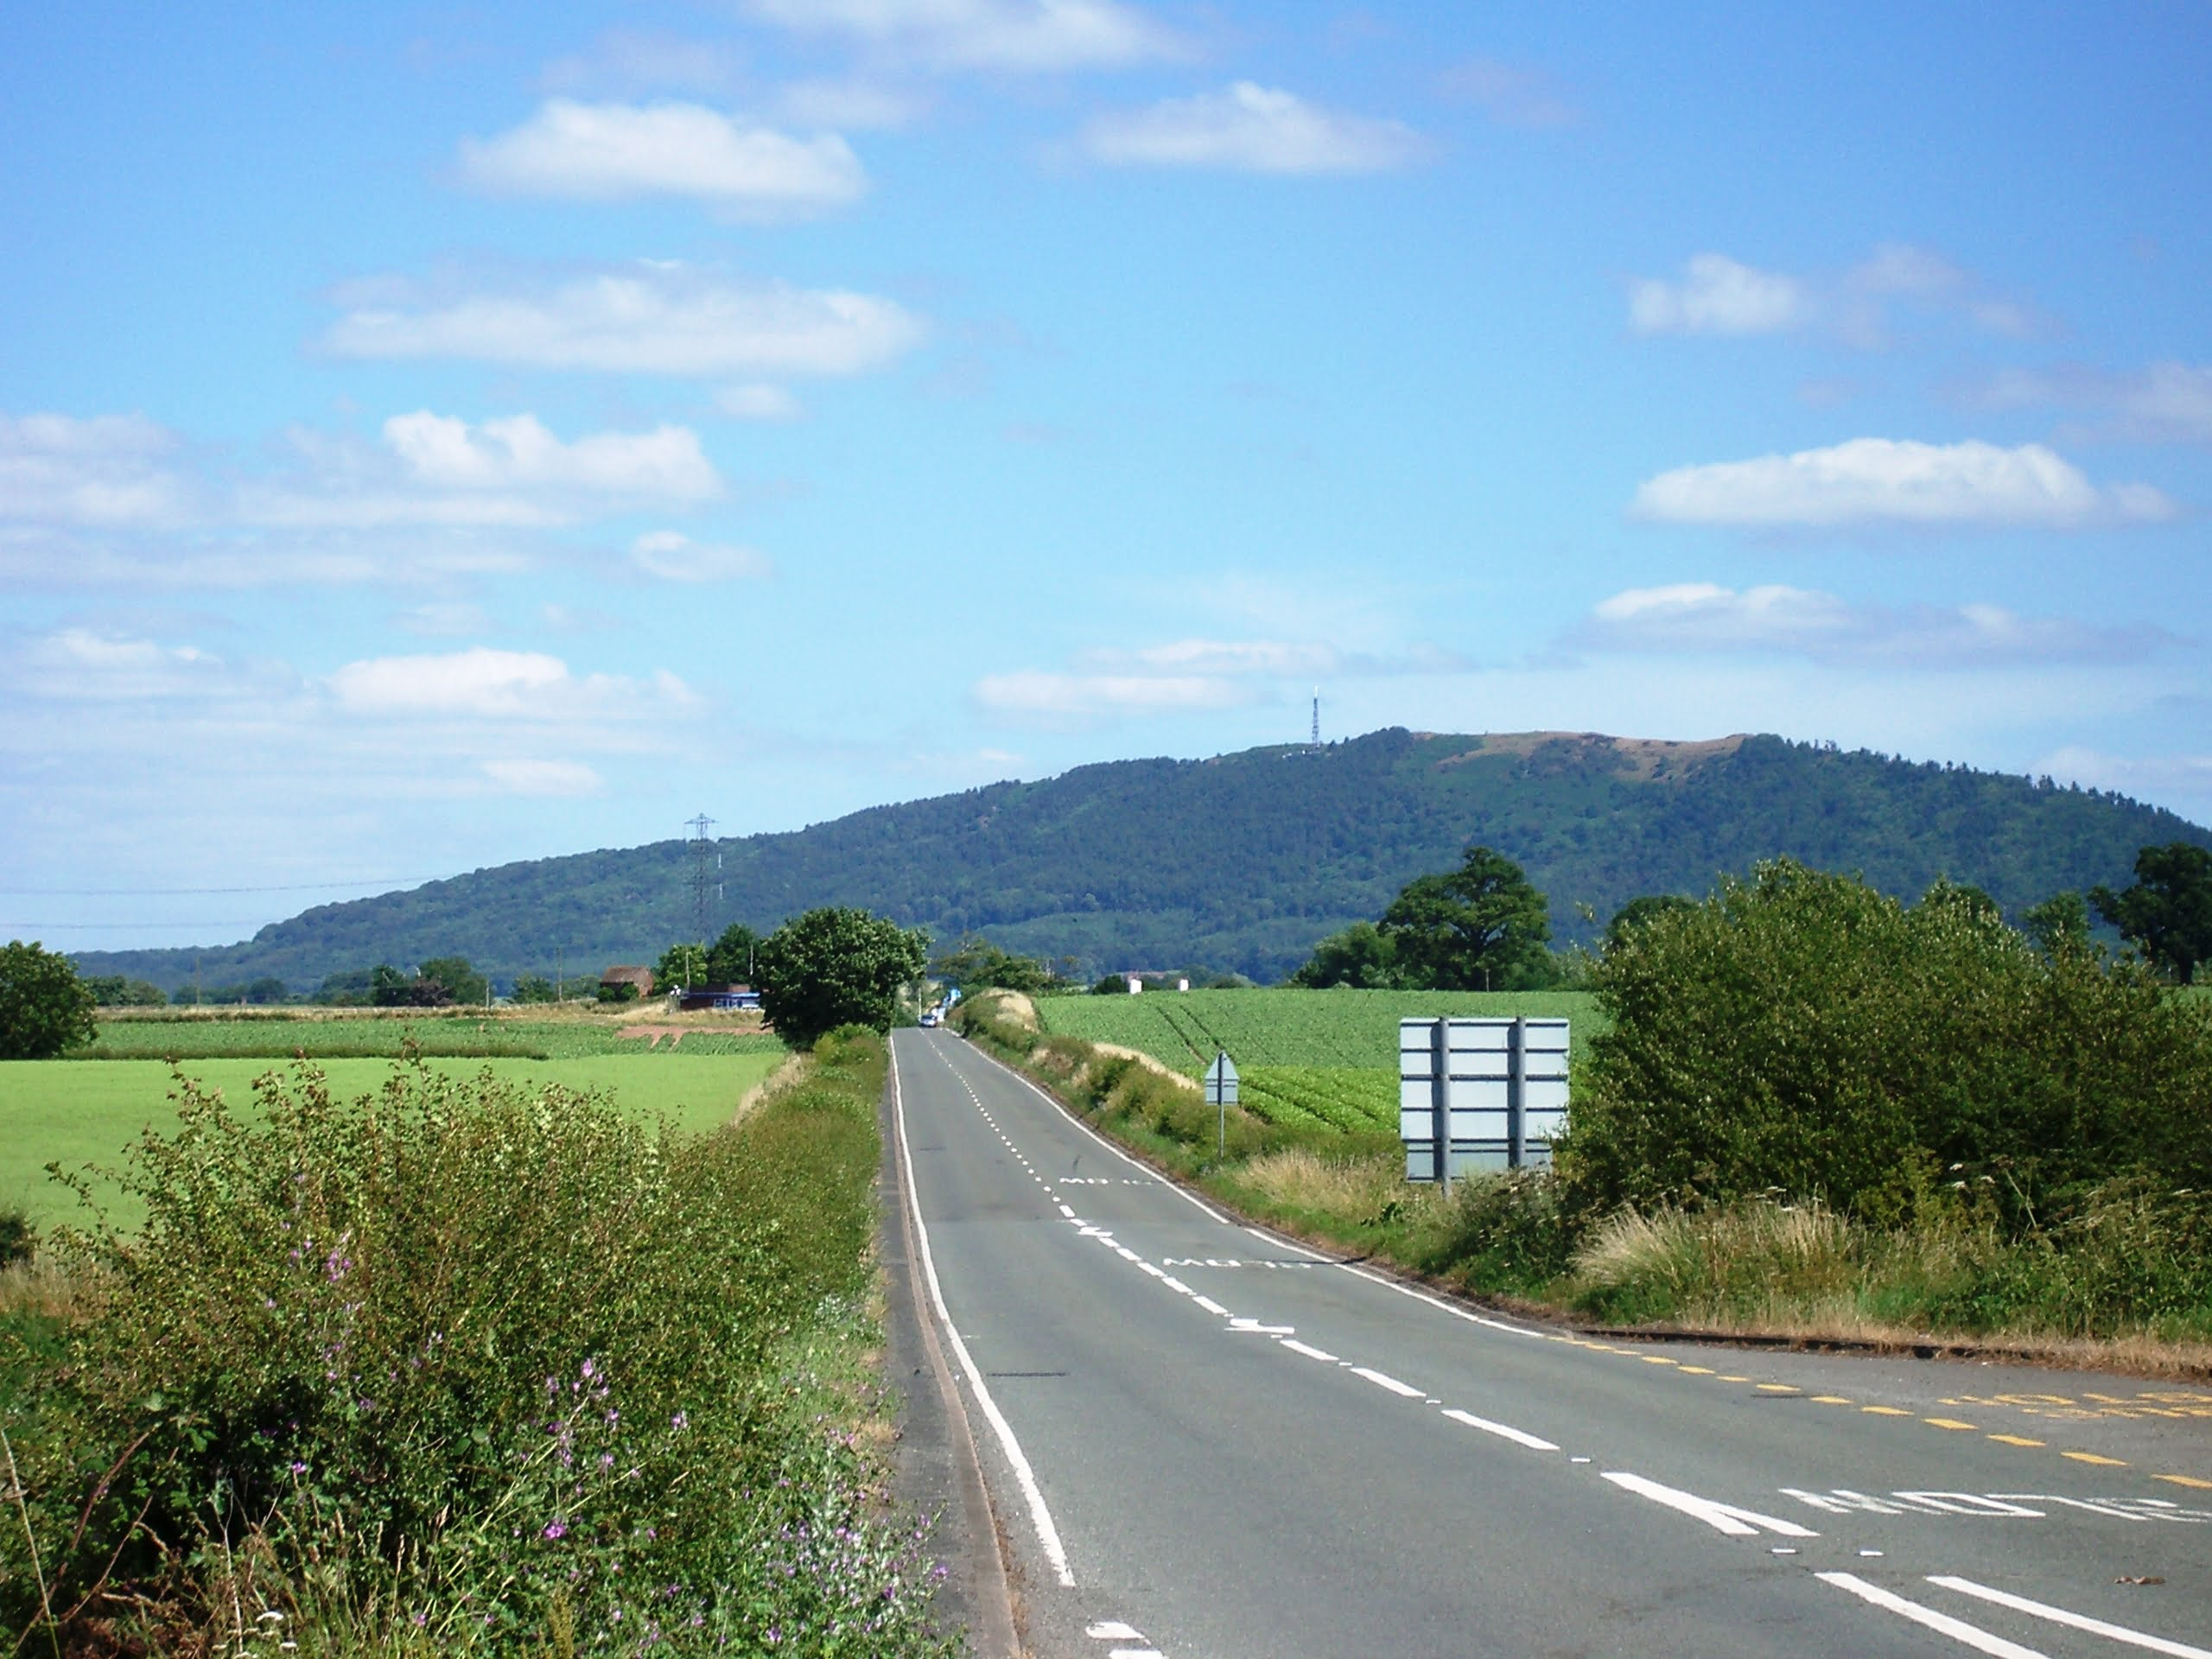 holyhead-road-and-the-wrekin